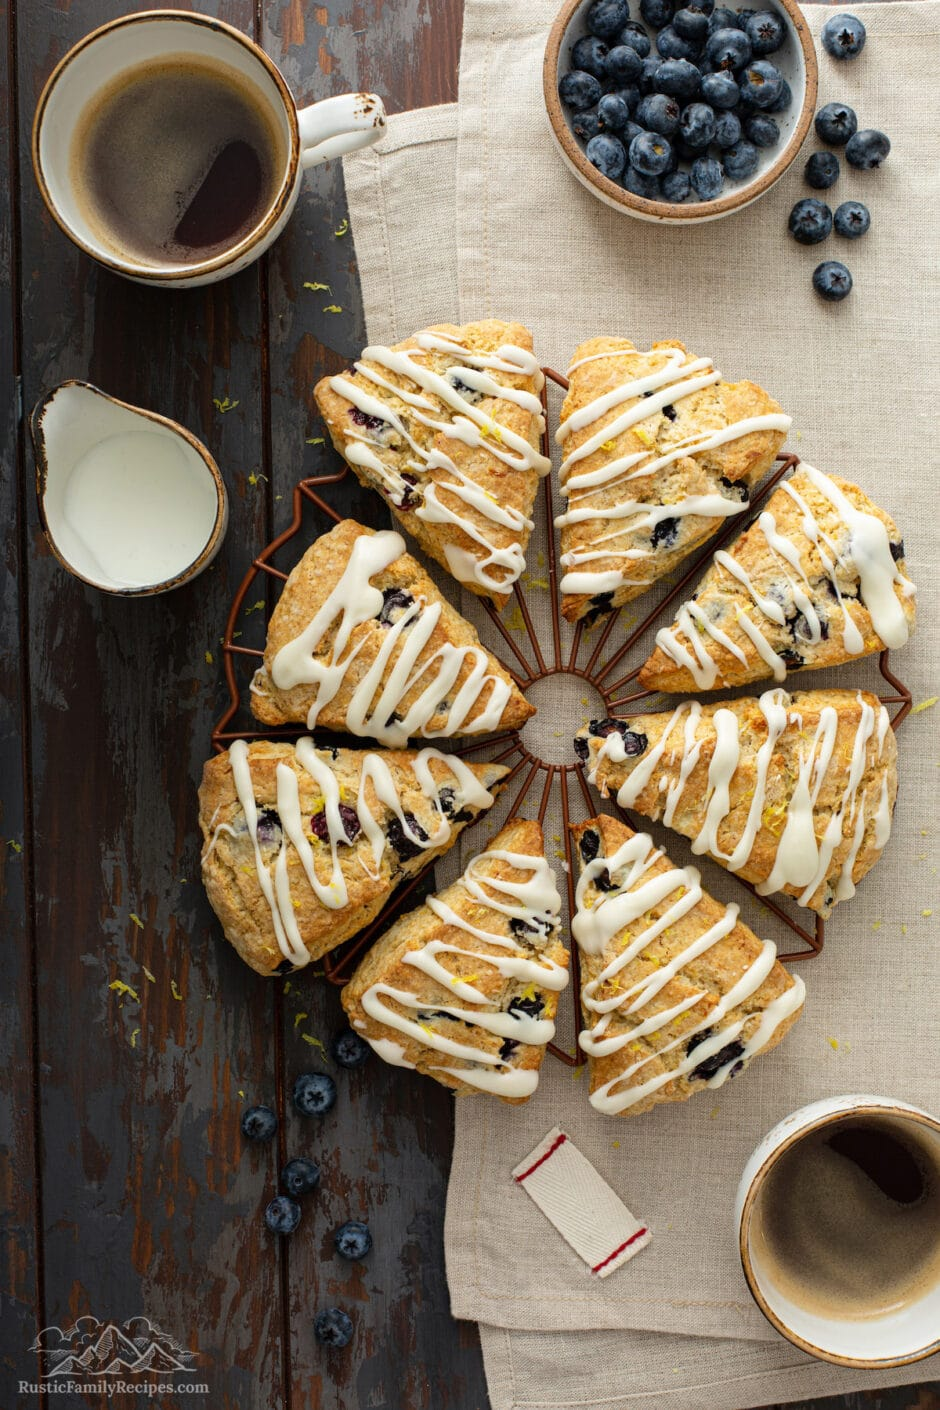 Glazed blueberry scones on a cooling rack.